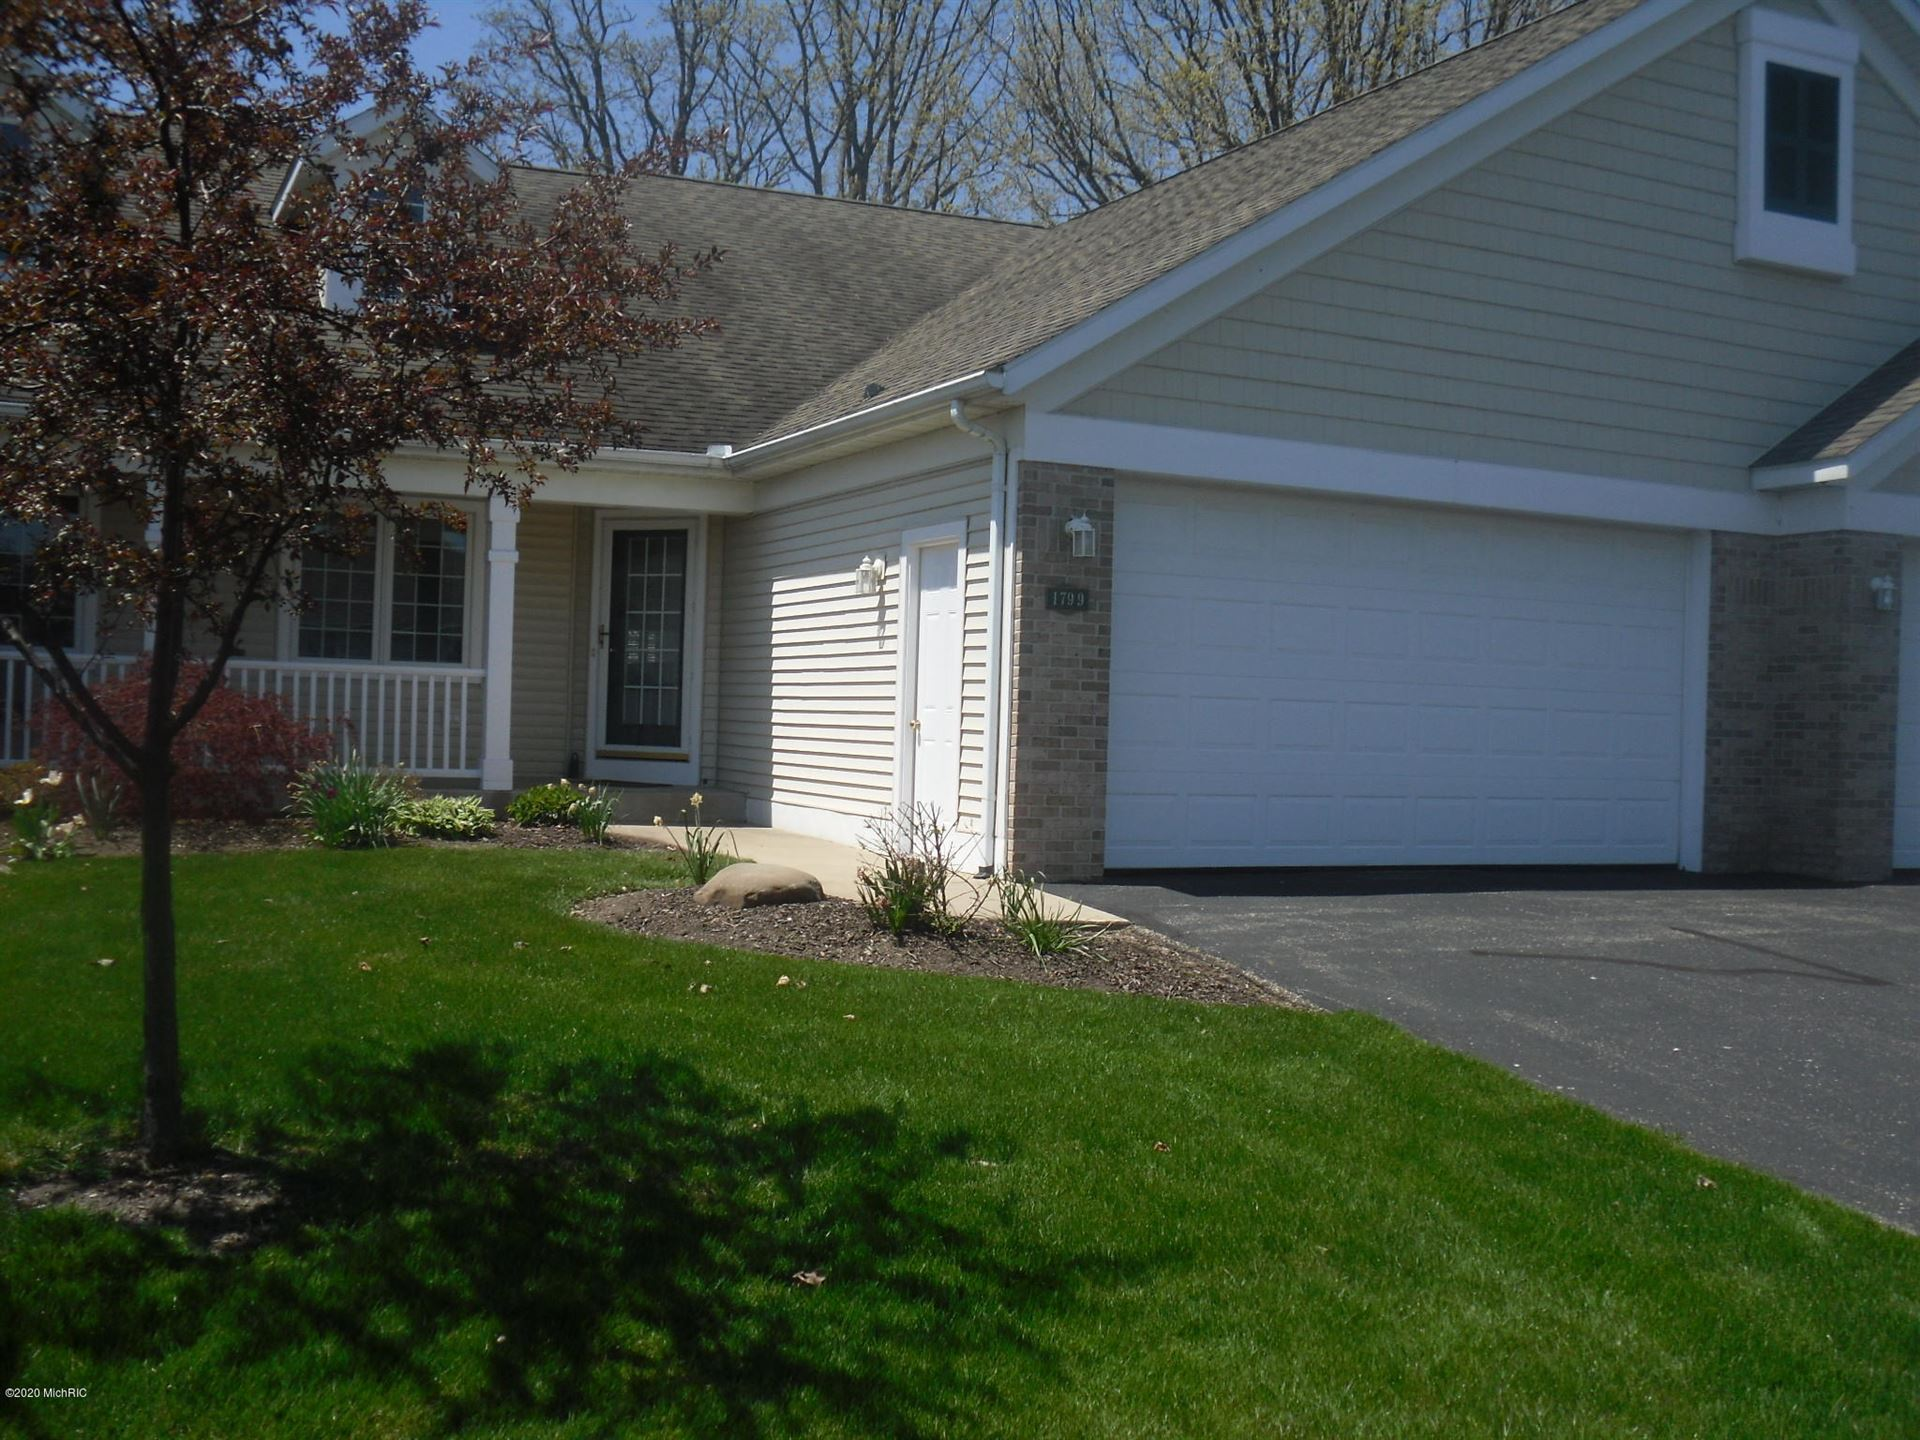 1799 W West Clear Water Drive, Zeeland, MI 49464 - #: 20016203